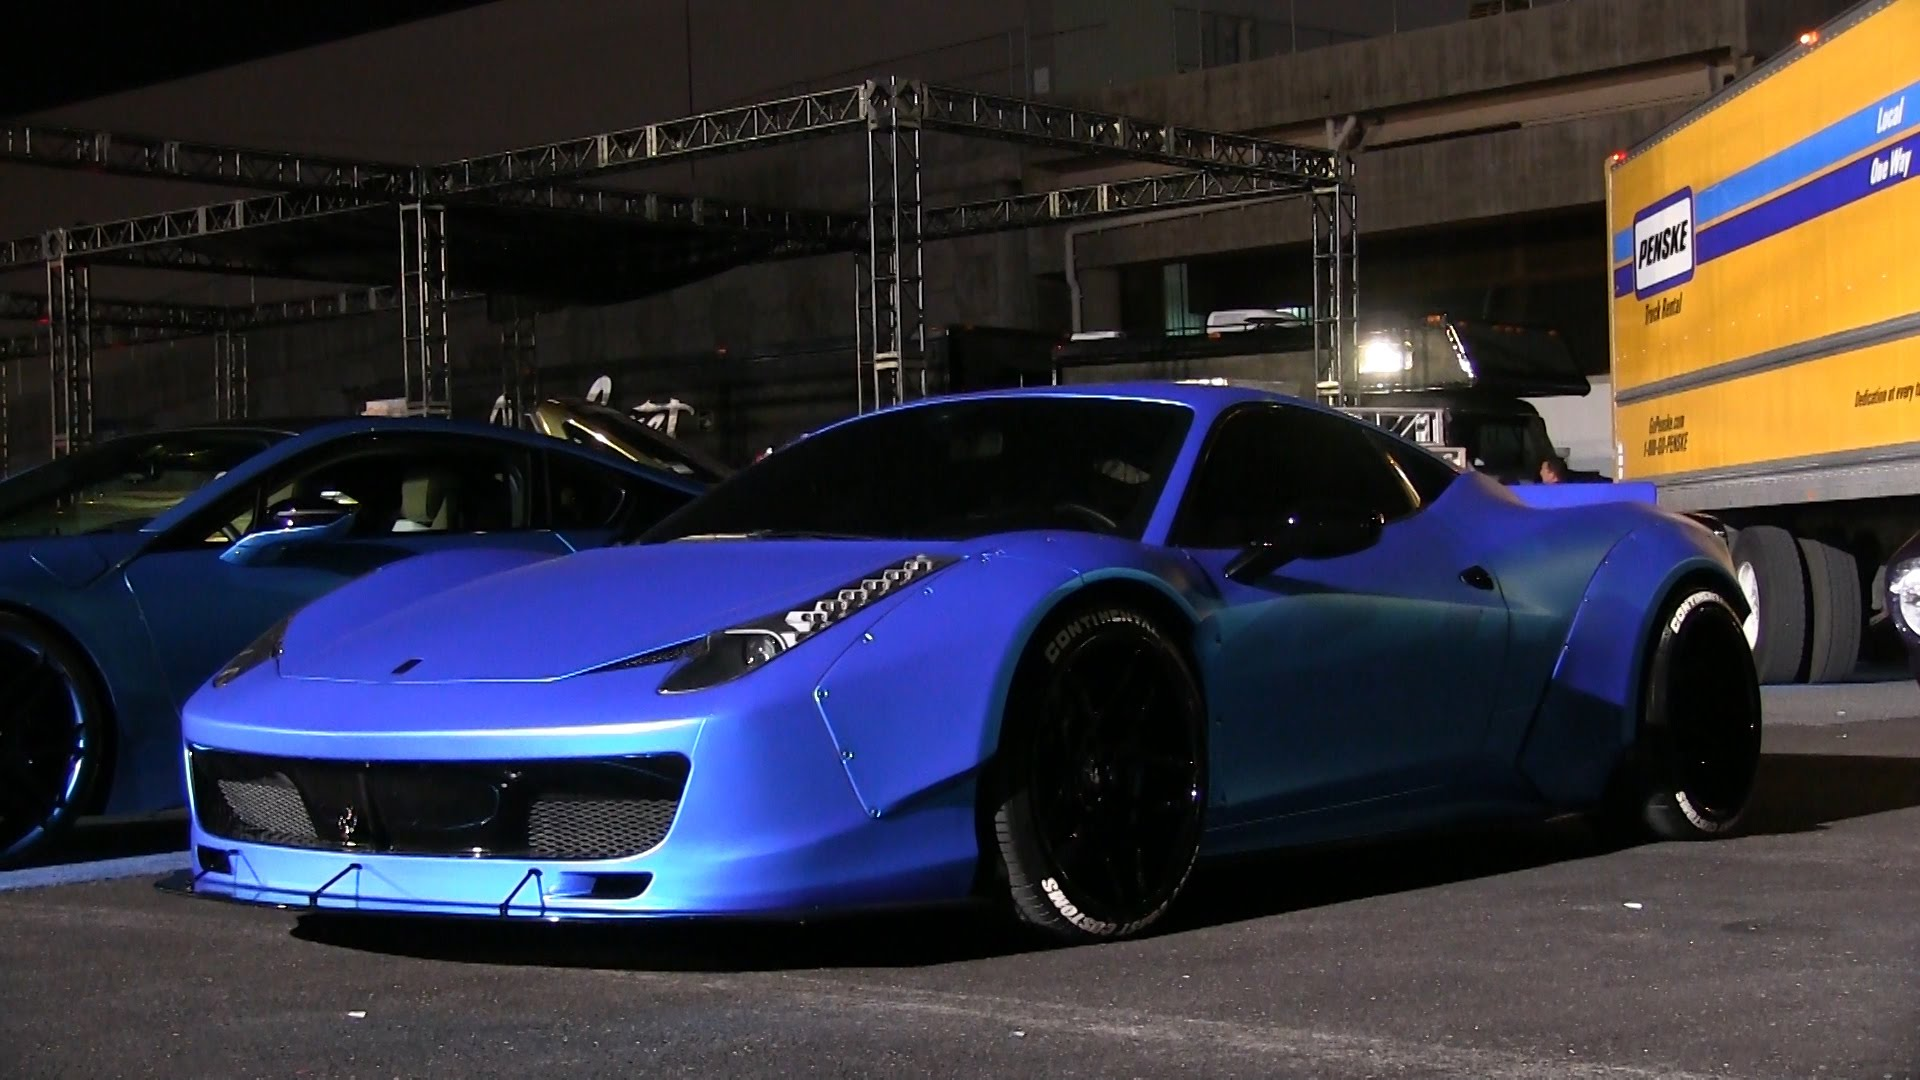 West Coast Customs Cars For Sale >> Video: Up Close With Justin Bieber's Liberty Walk Ferrari ...